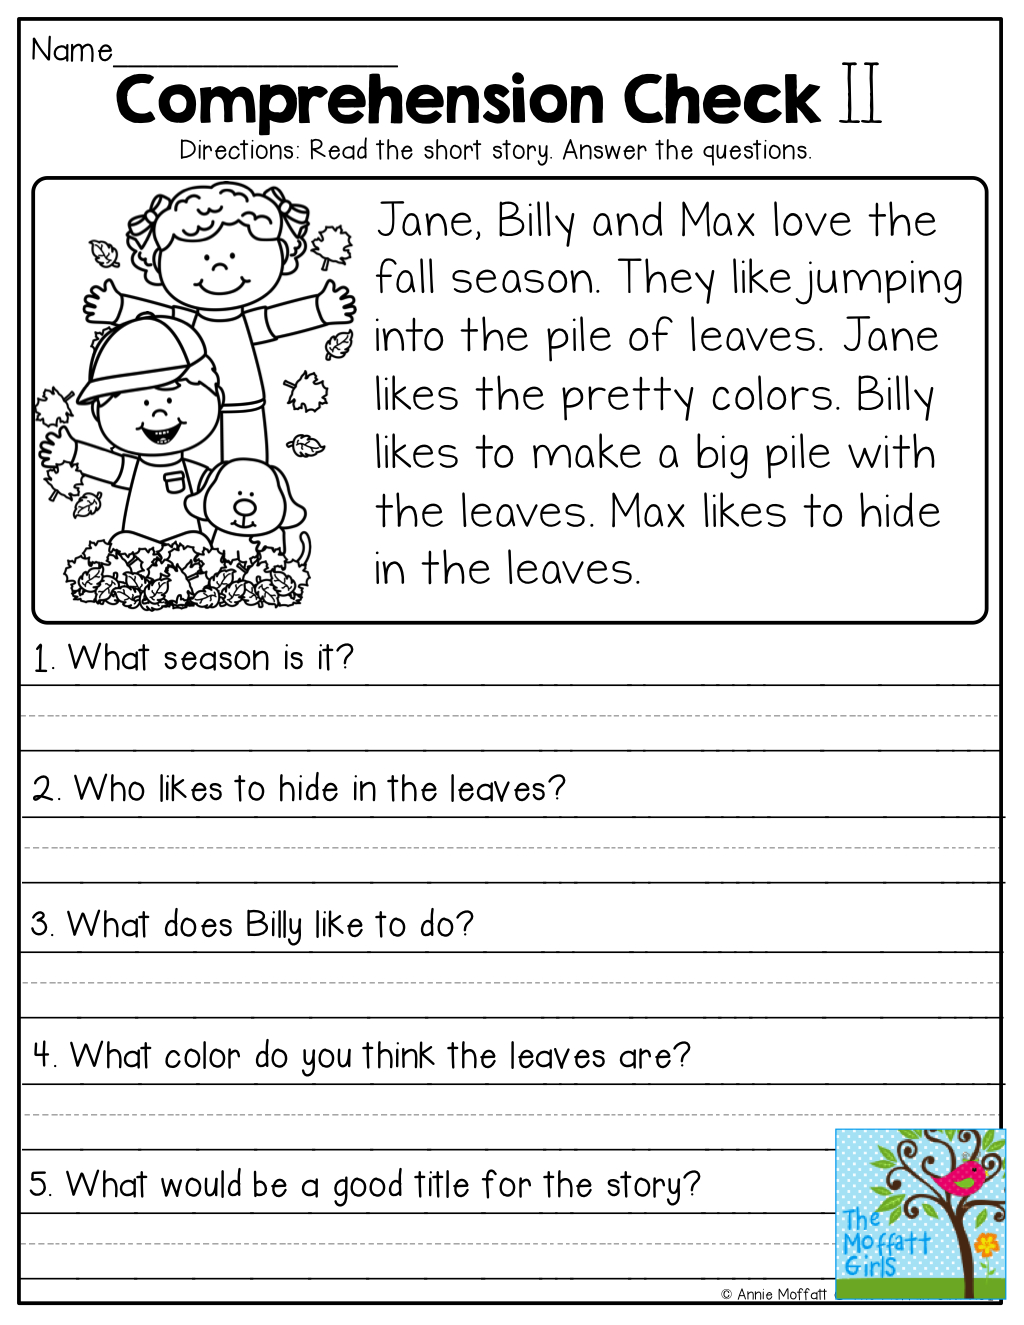 Comprehension Checks And So Many More Useful Printables!   Reading - Free Printable Short Stories With Comprehension Questions